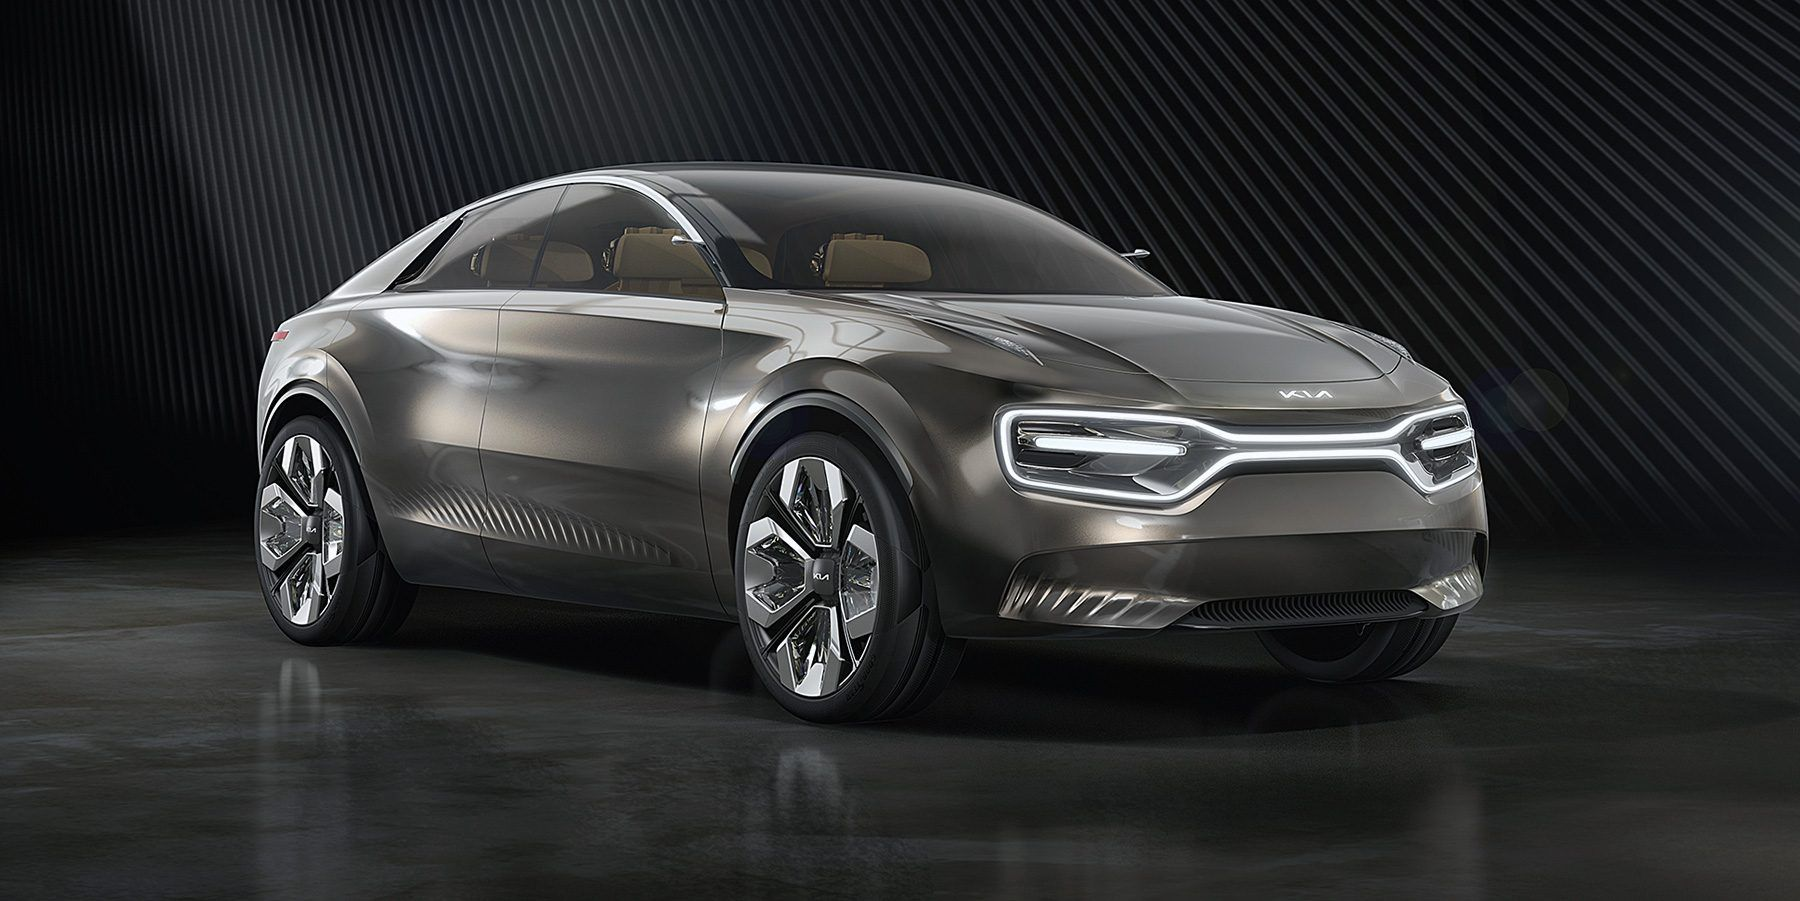 Kia will produce its sporty Imagine EV in 2021, but an